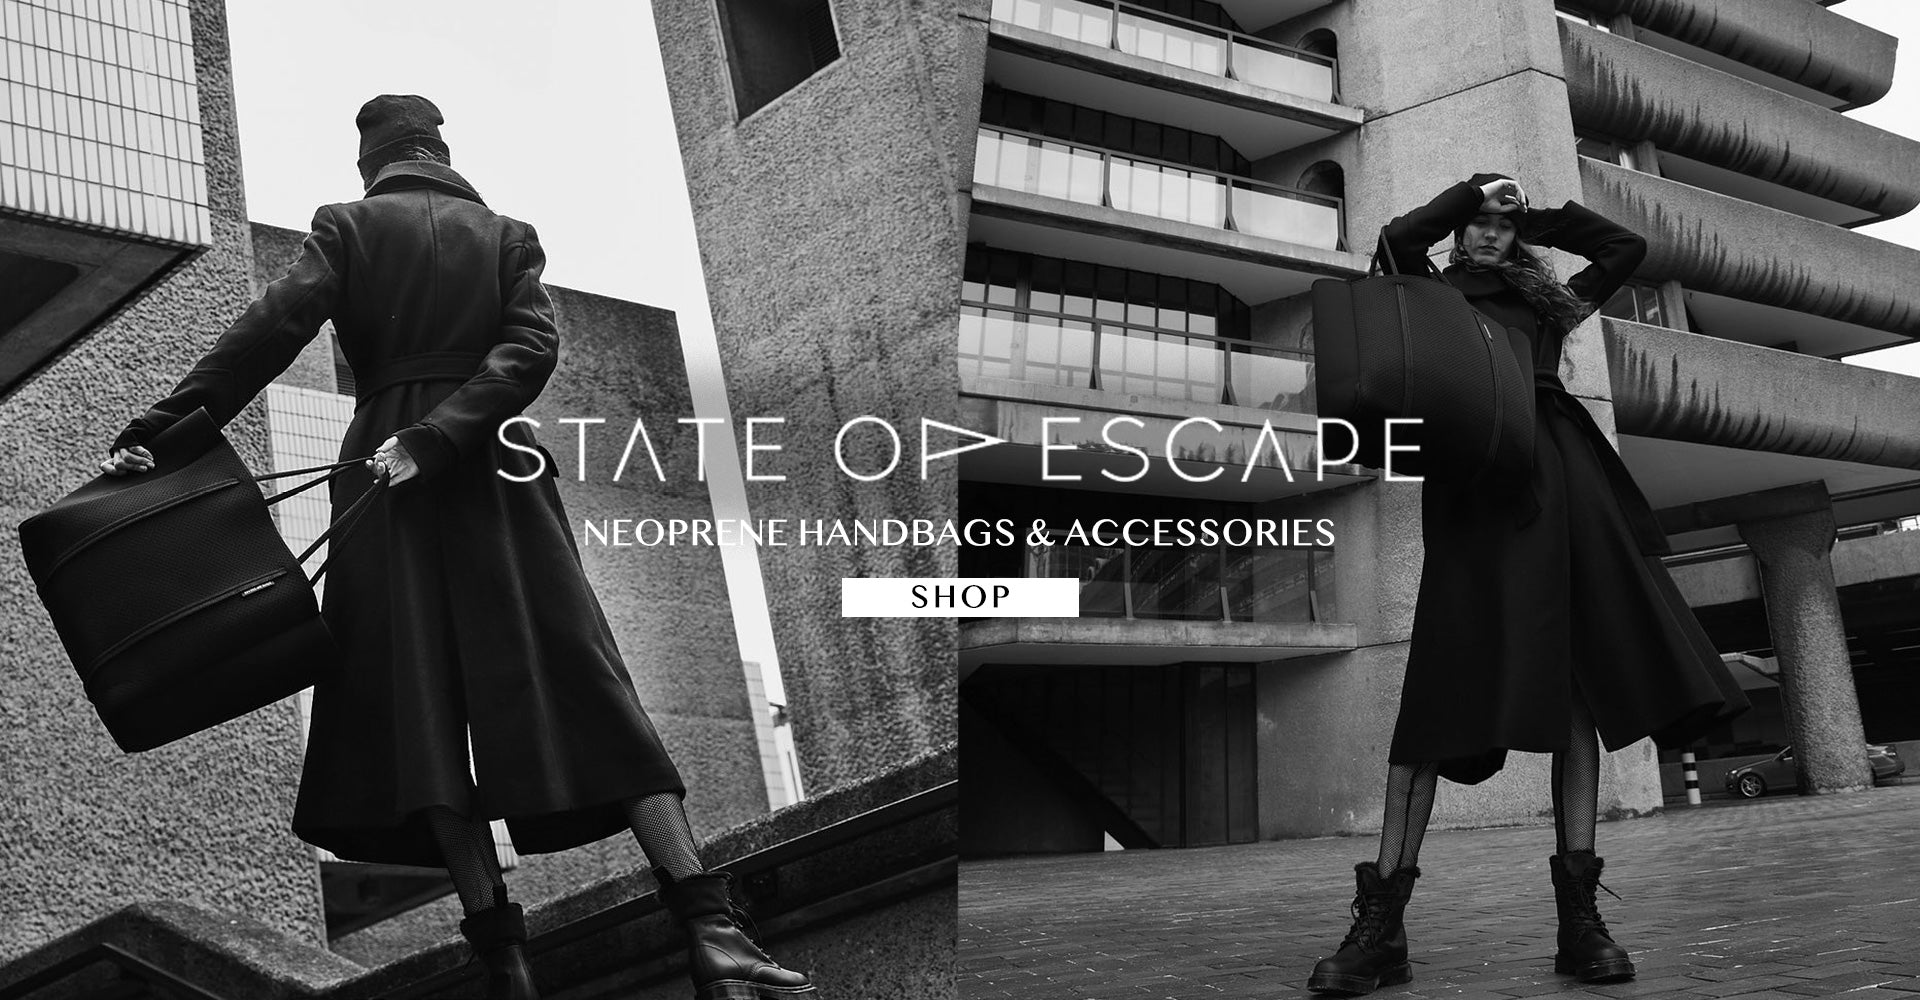 State of Escape Neoprene Handbags & Accessories All New Collection Shop STATE OF ESCAPE Neoprene Handbags & Accessories